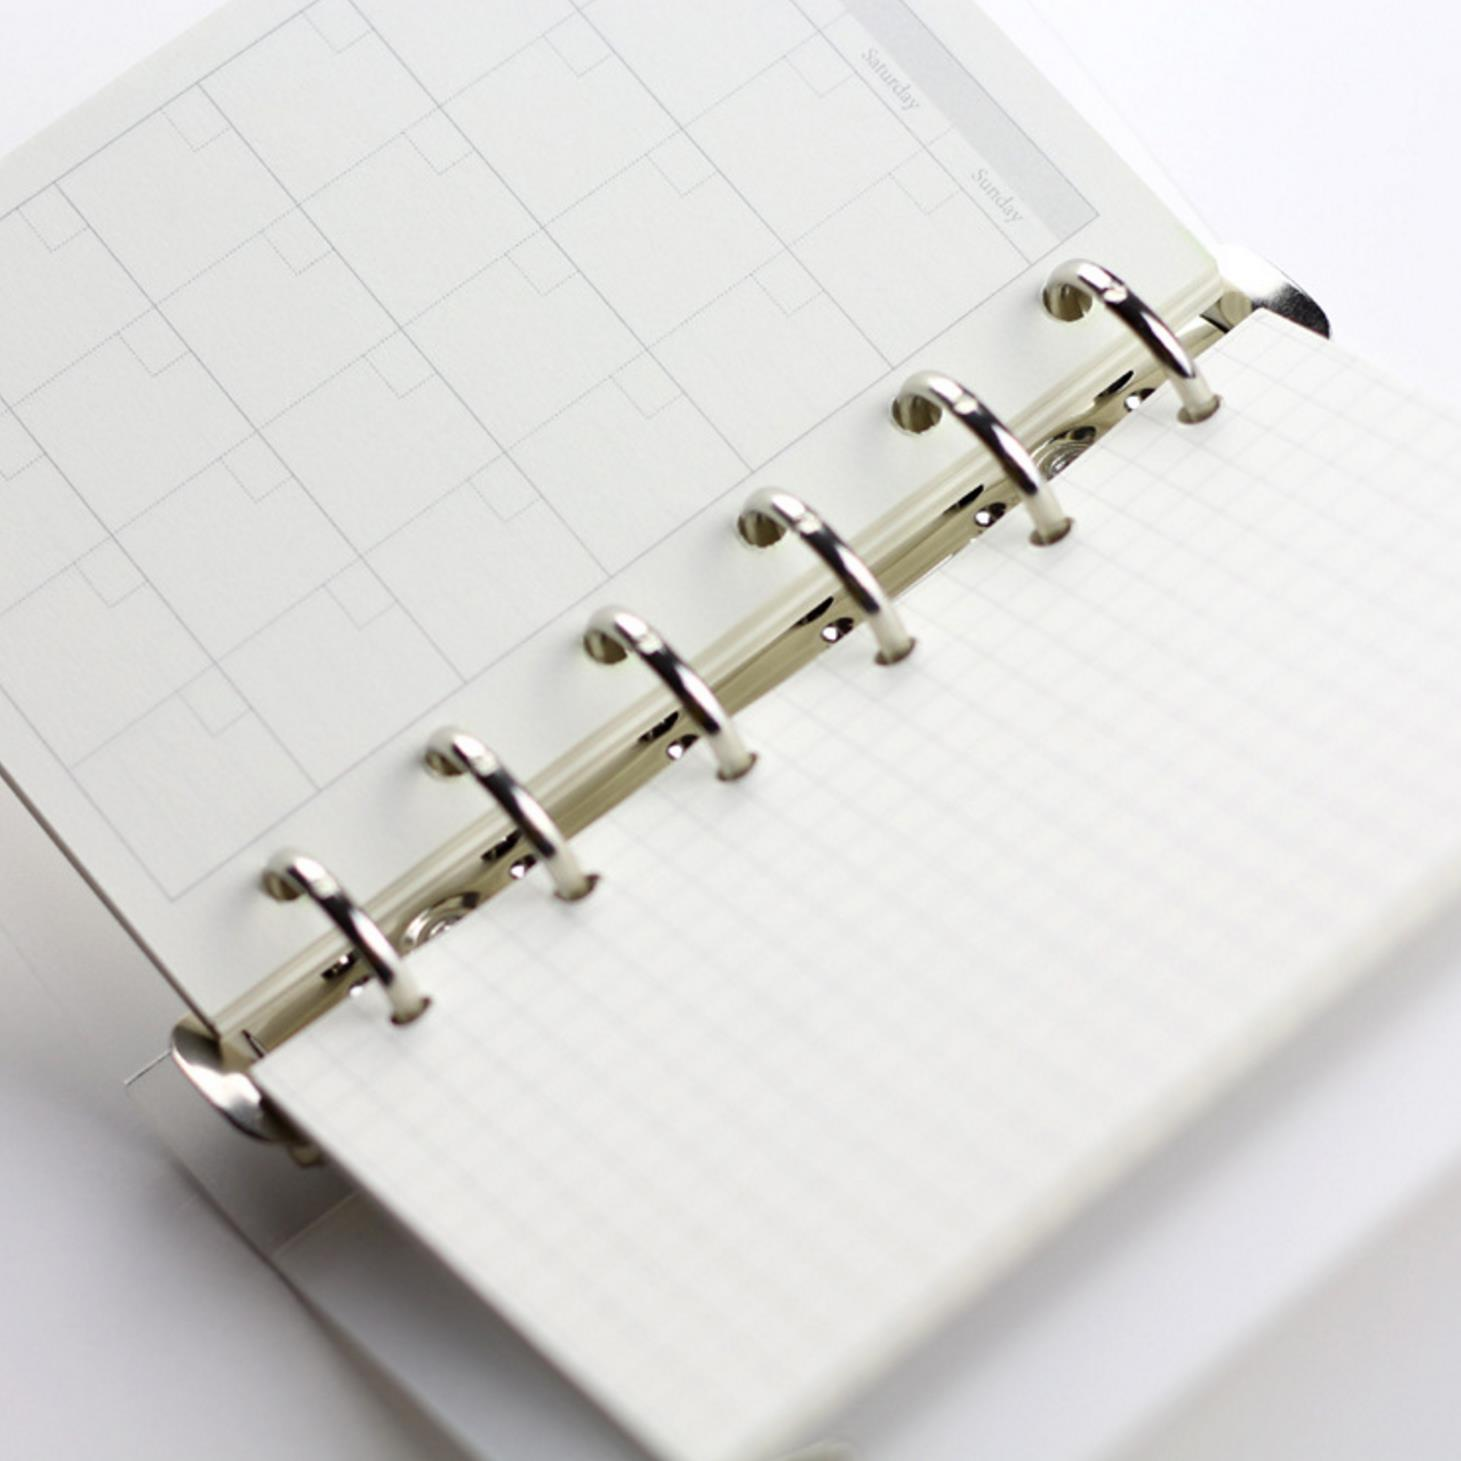 A5 A6 A7 Loose Leaf Notebook Refill Spiral Binder Planner Inner Page Inside Paper Dairy Weekly Monthly Plan To do Line Dot grid monthly plan spiral binderdot grid 6